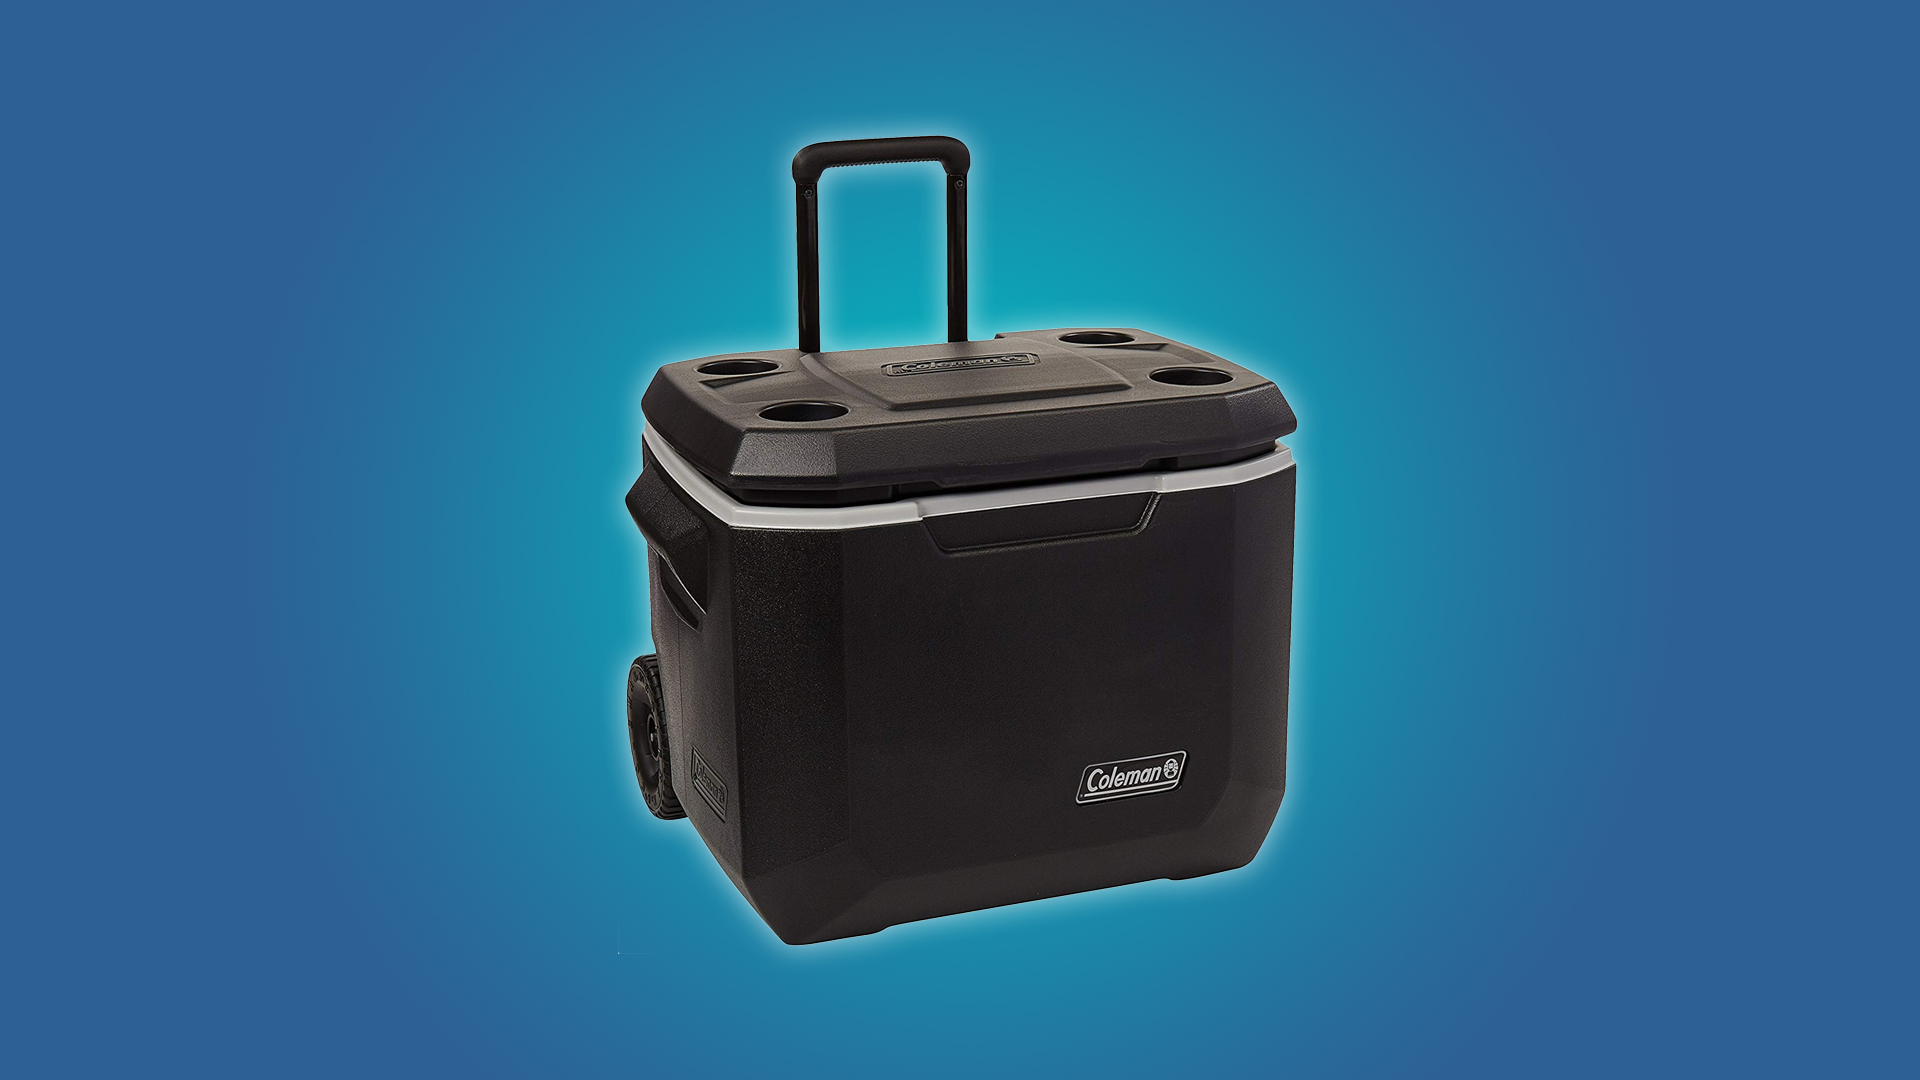 The Coleman Xtreme Wheeled 50qt Cooler